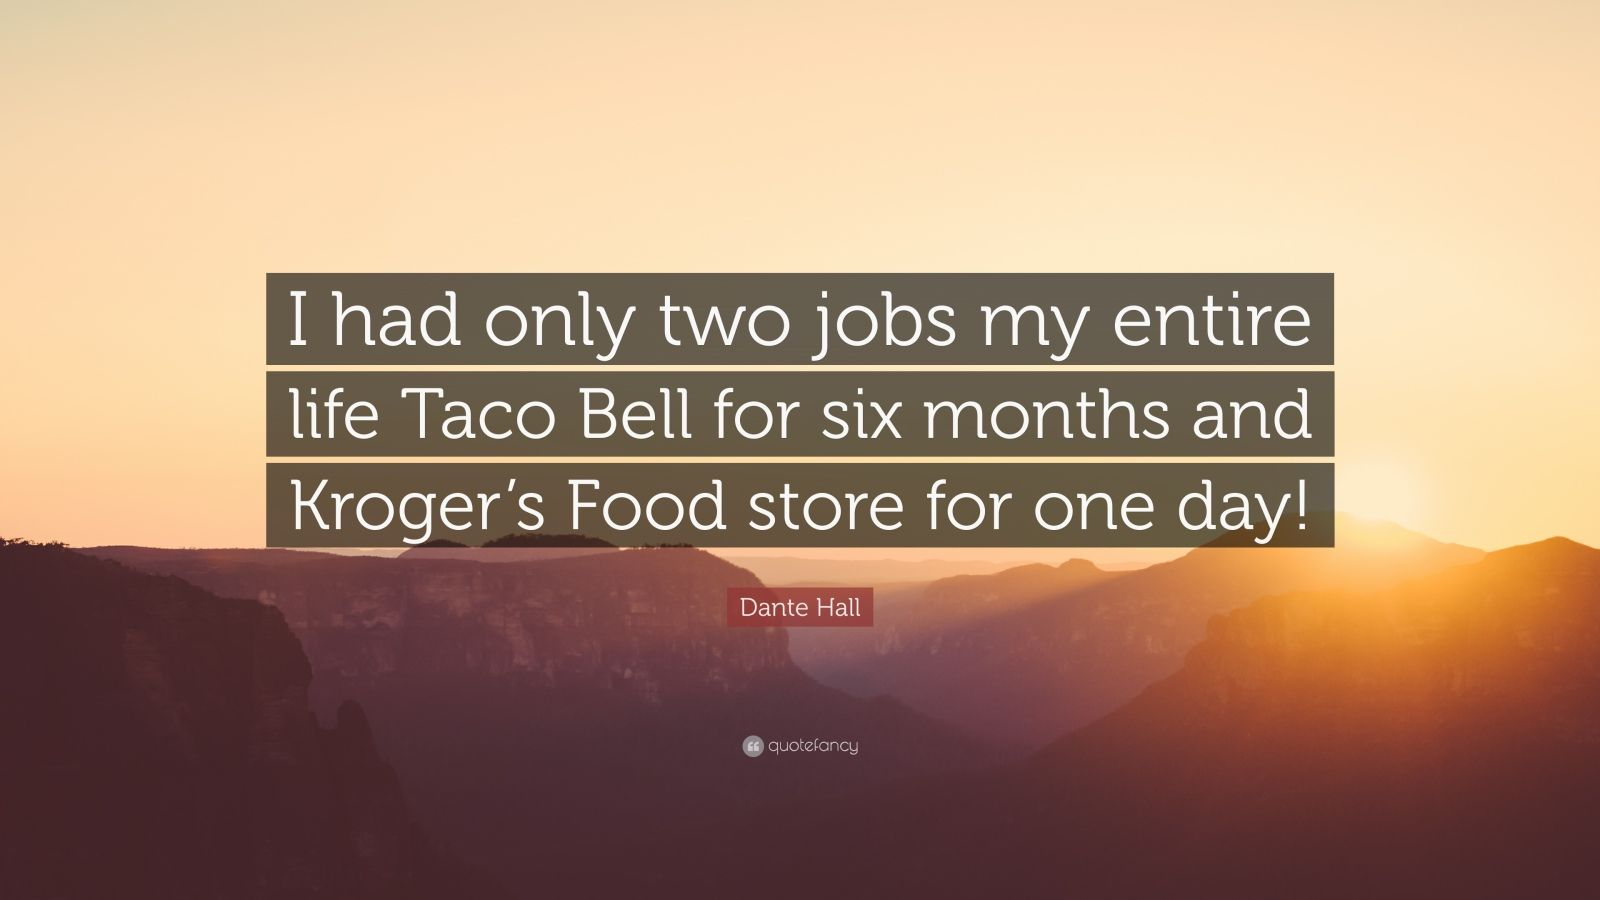 """Dante Hall Quote: """"I had only two jobs my entire life Taco Bell for six months and Kroger's Food store for one day!"""""""